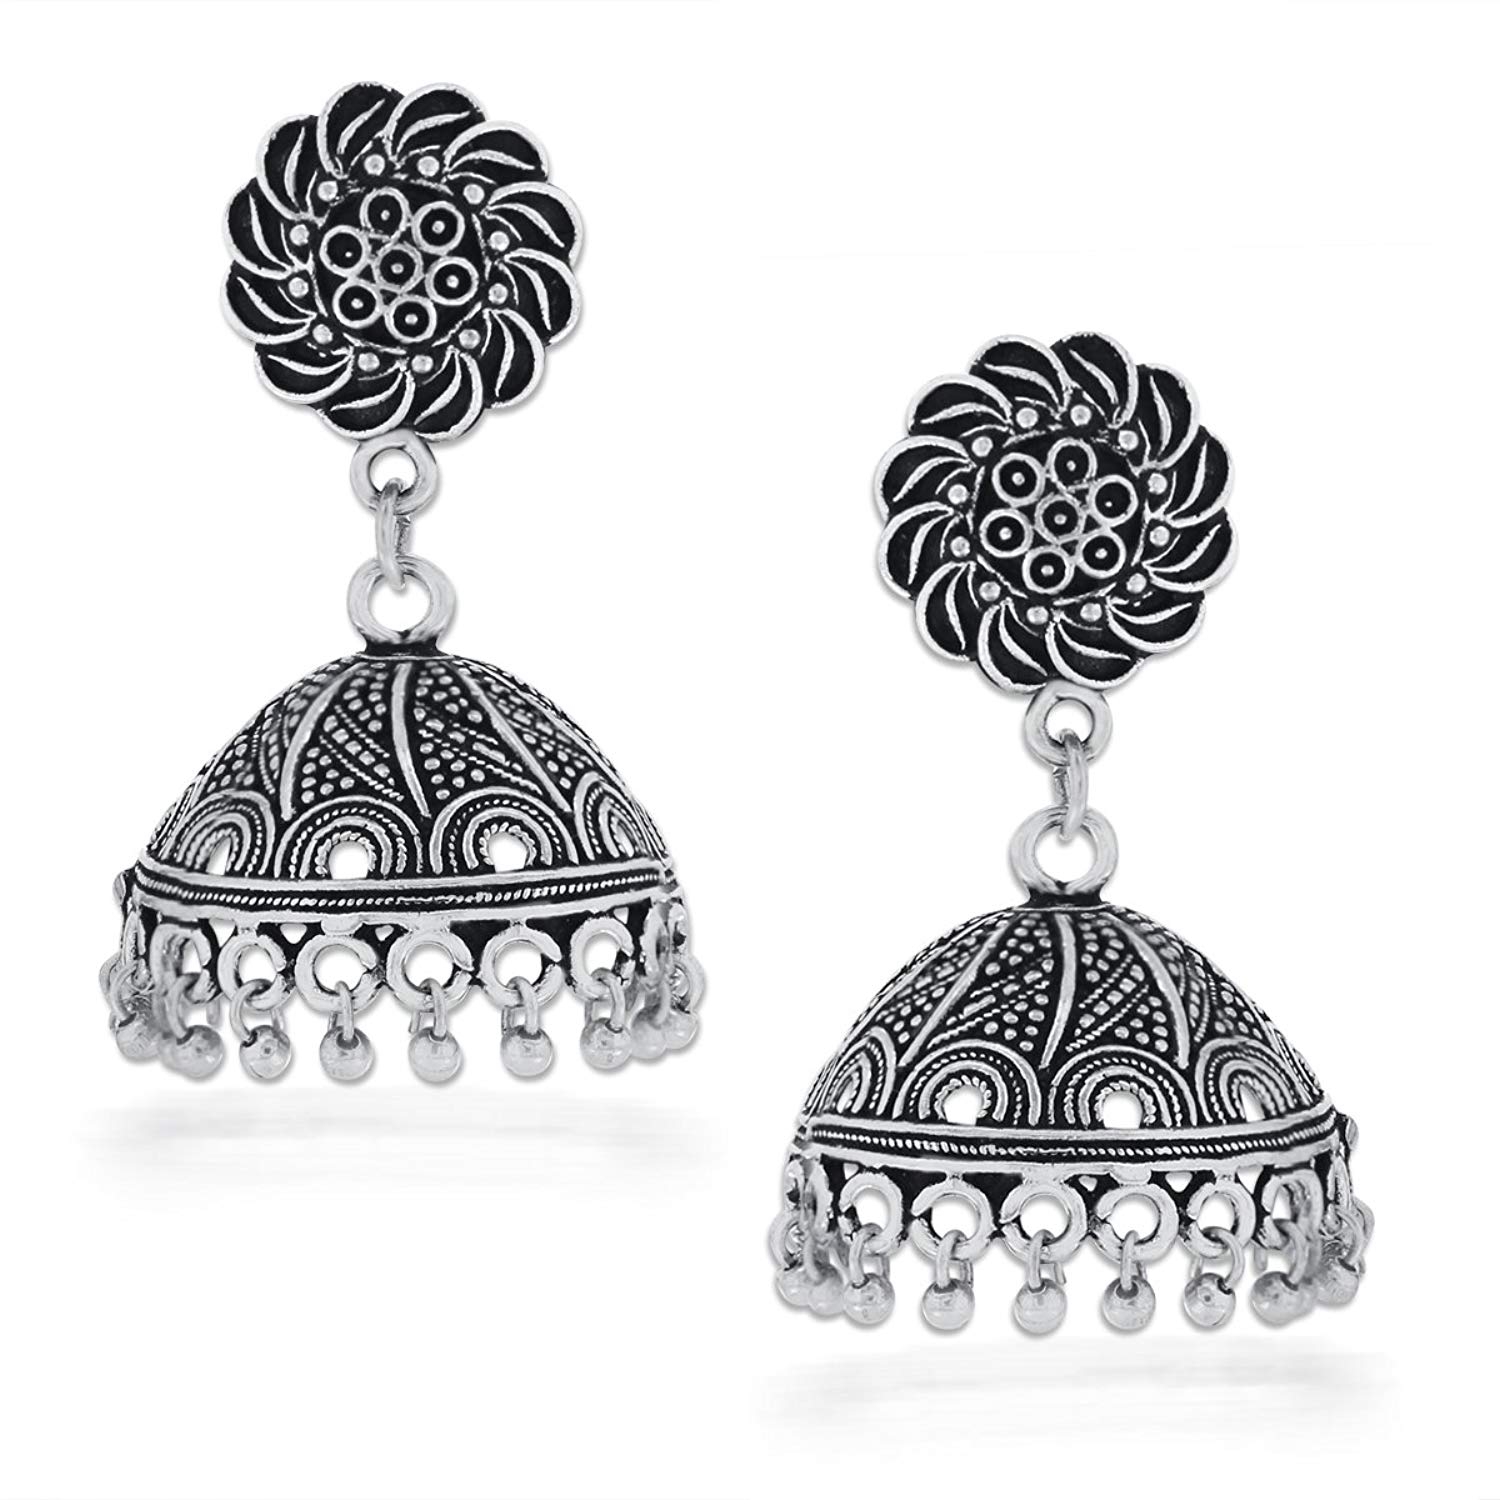 Loot:- Jewellery Flat 90 % off From just @Rs.69 only + Free delivery Buy fast